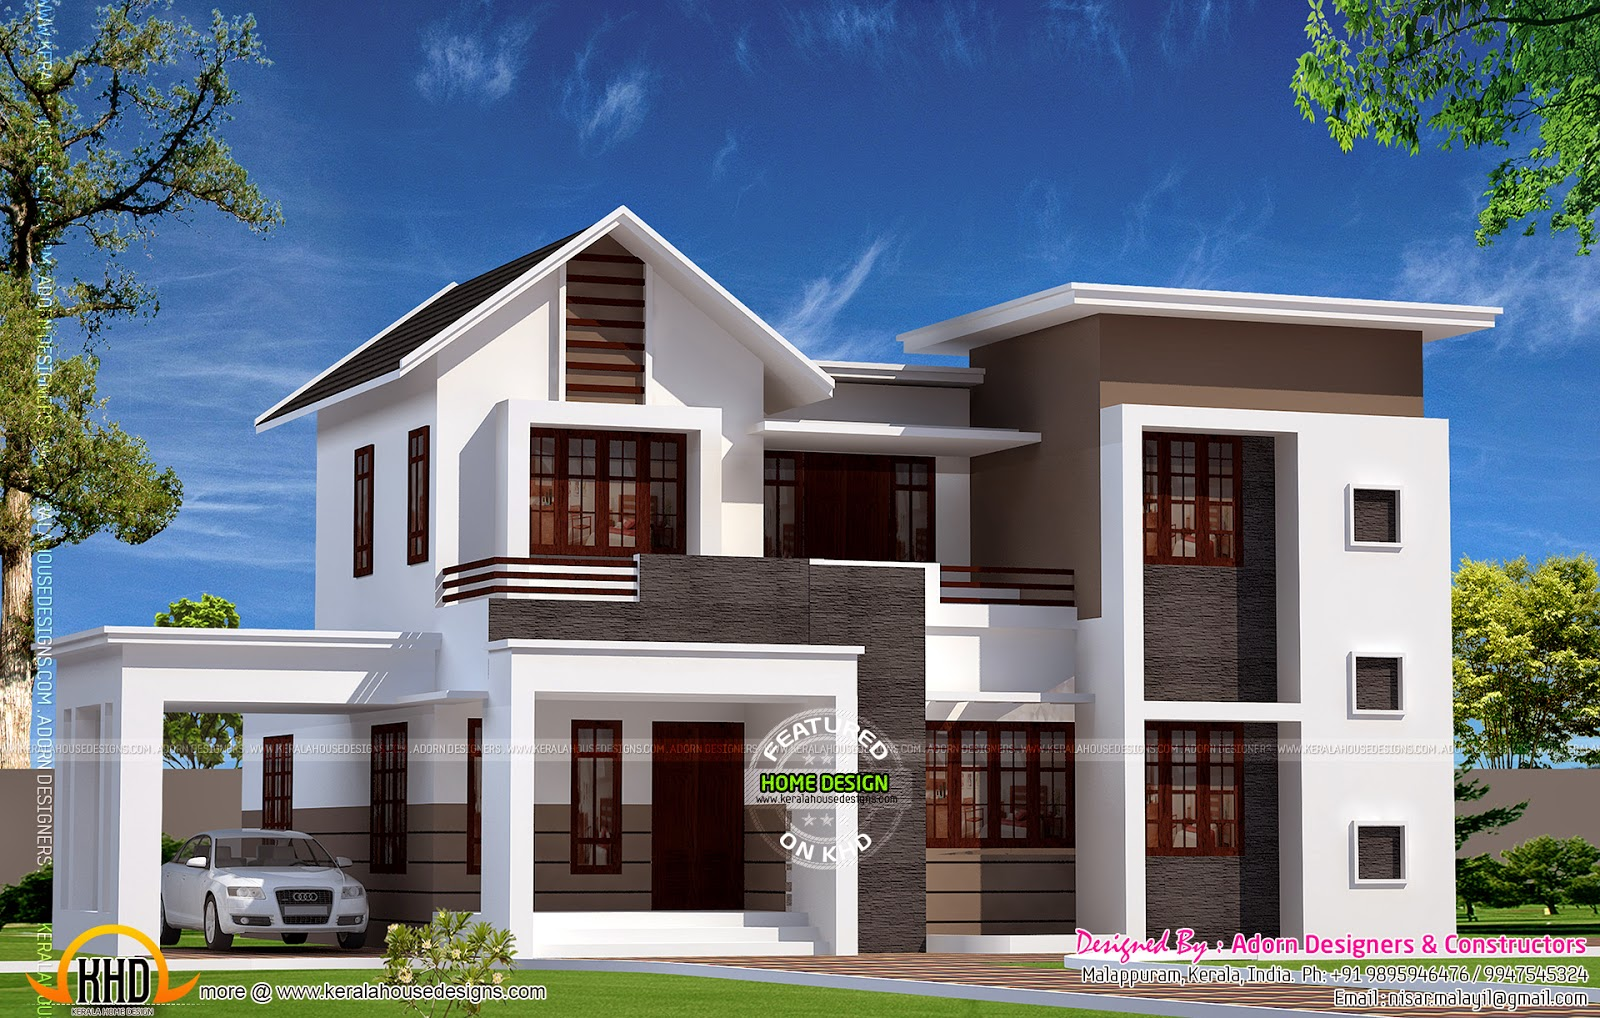 House design kerala model